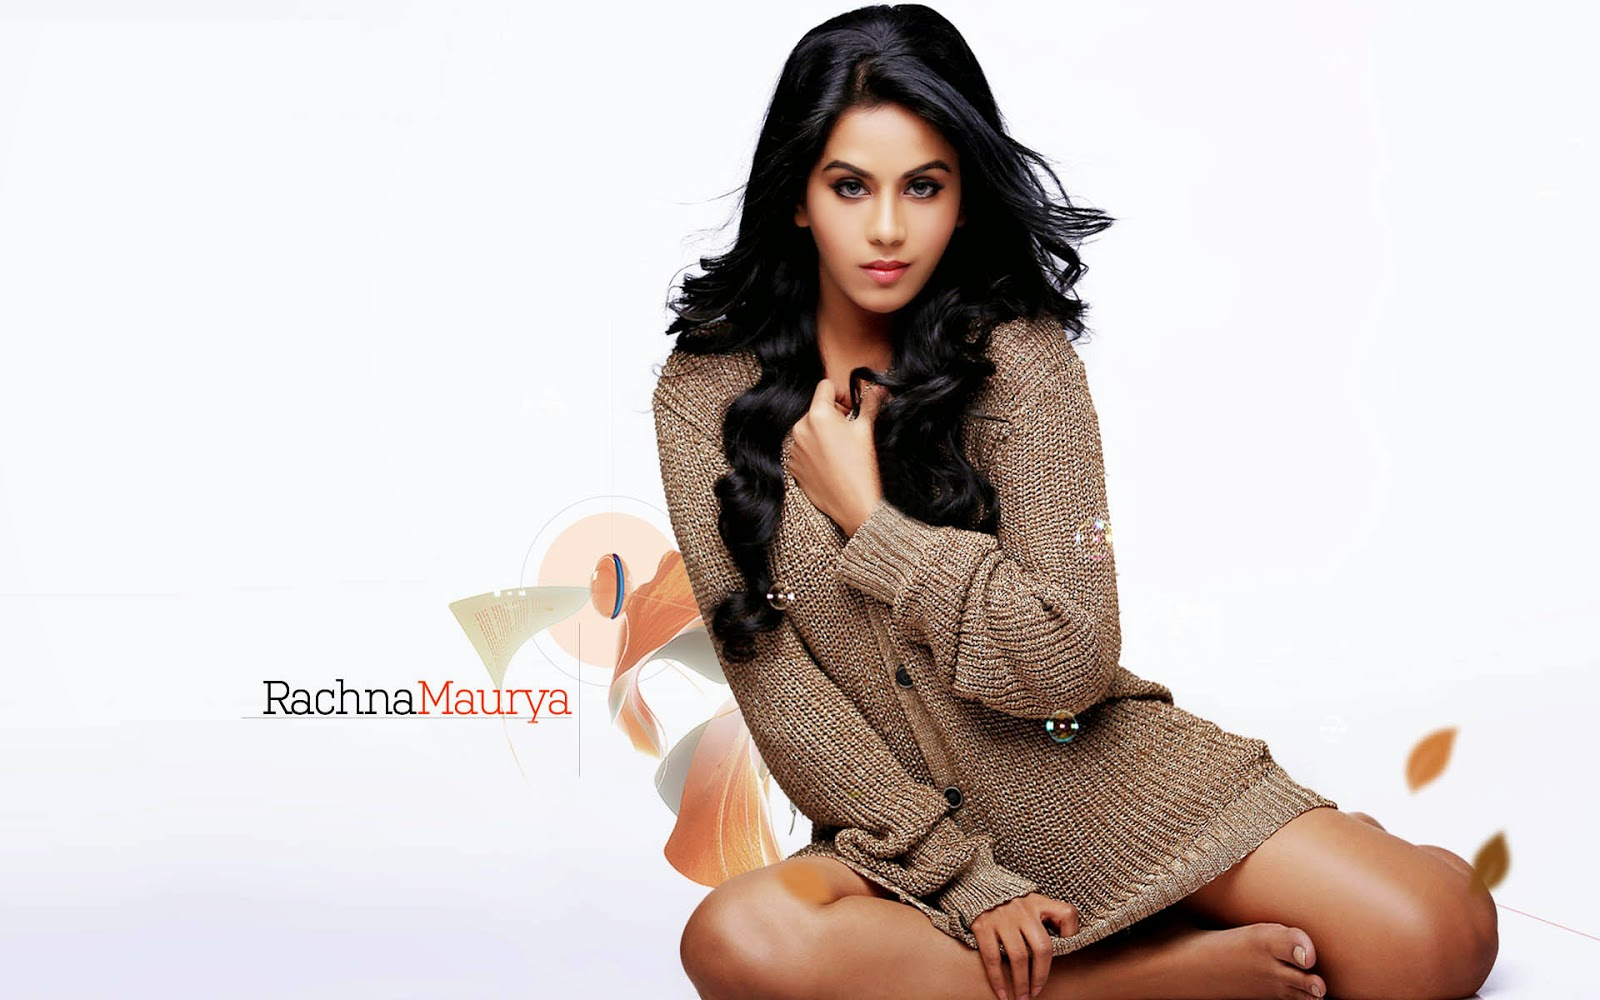 rachna-maurya-hot-wallpaper